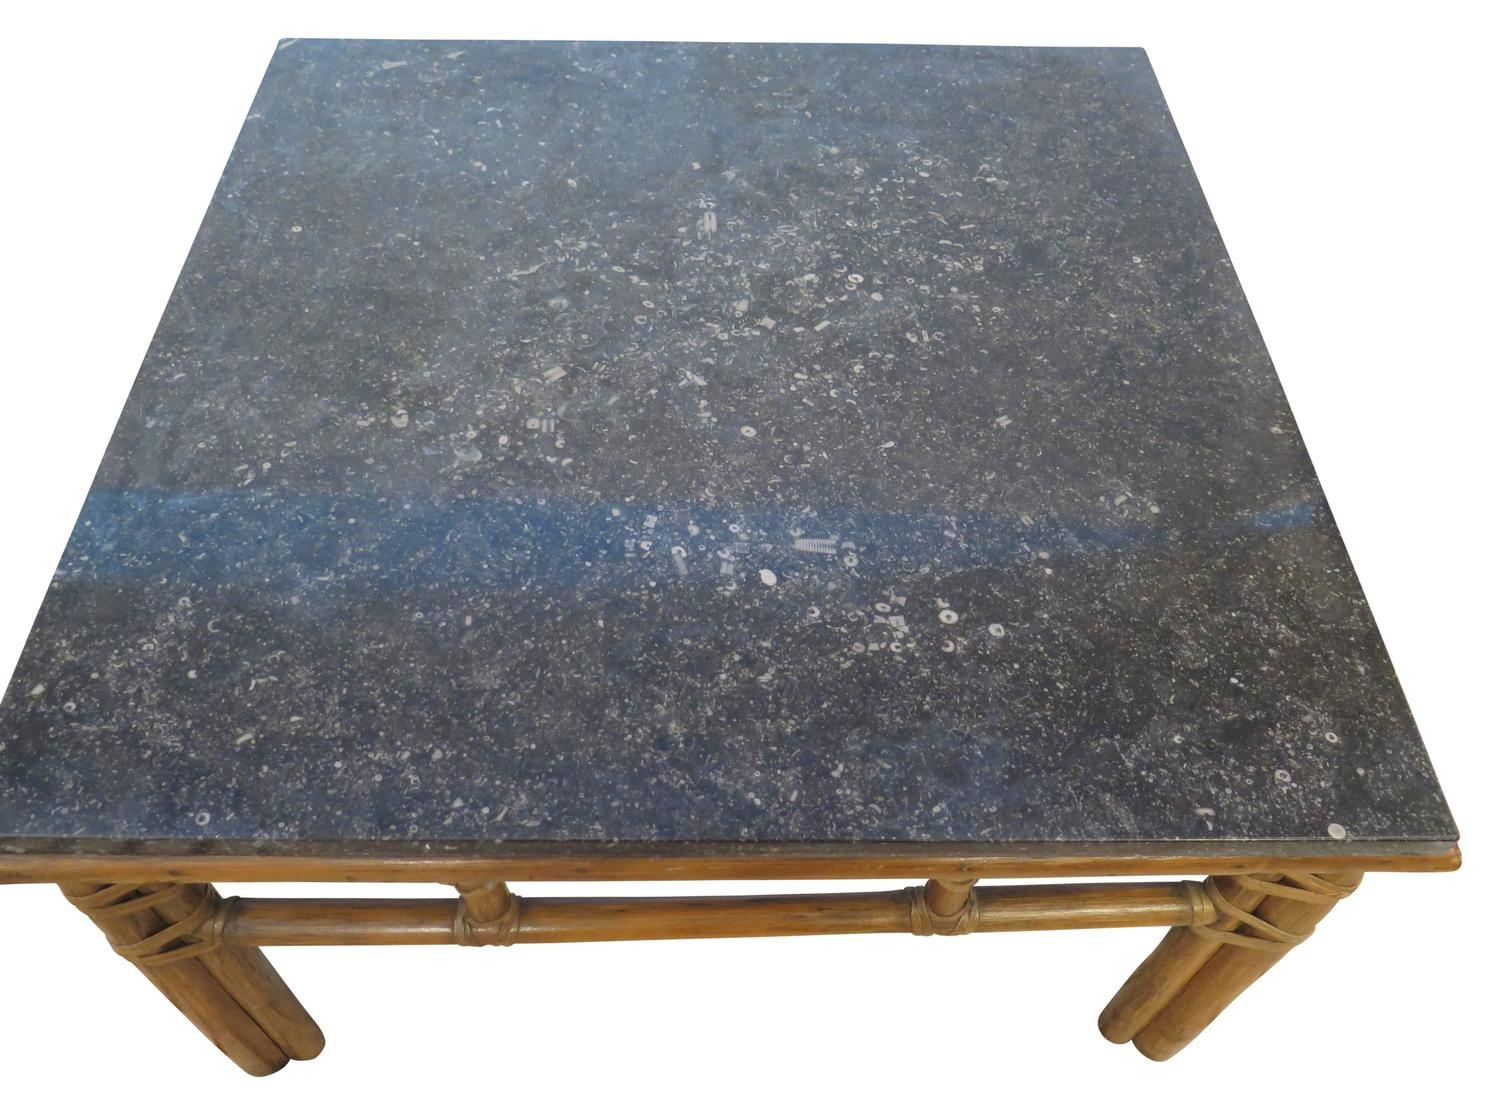 McGuire Coffee Table With Black Marble Top For Sale At 1stdibs